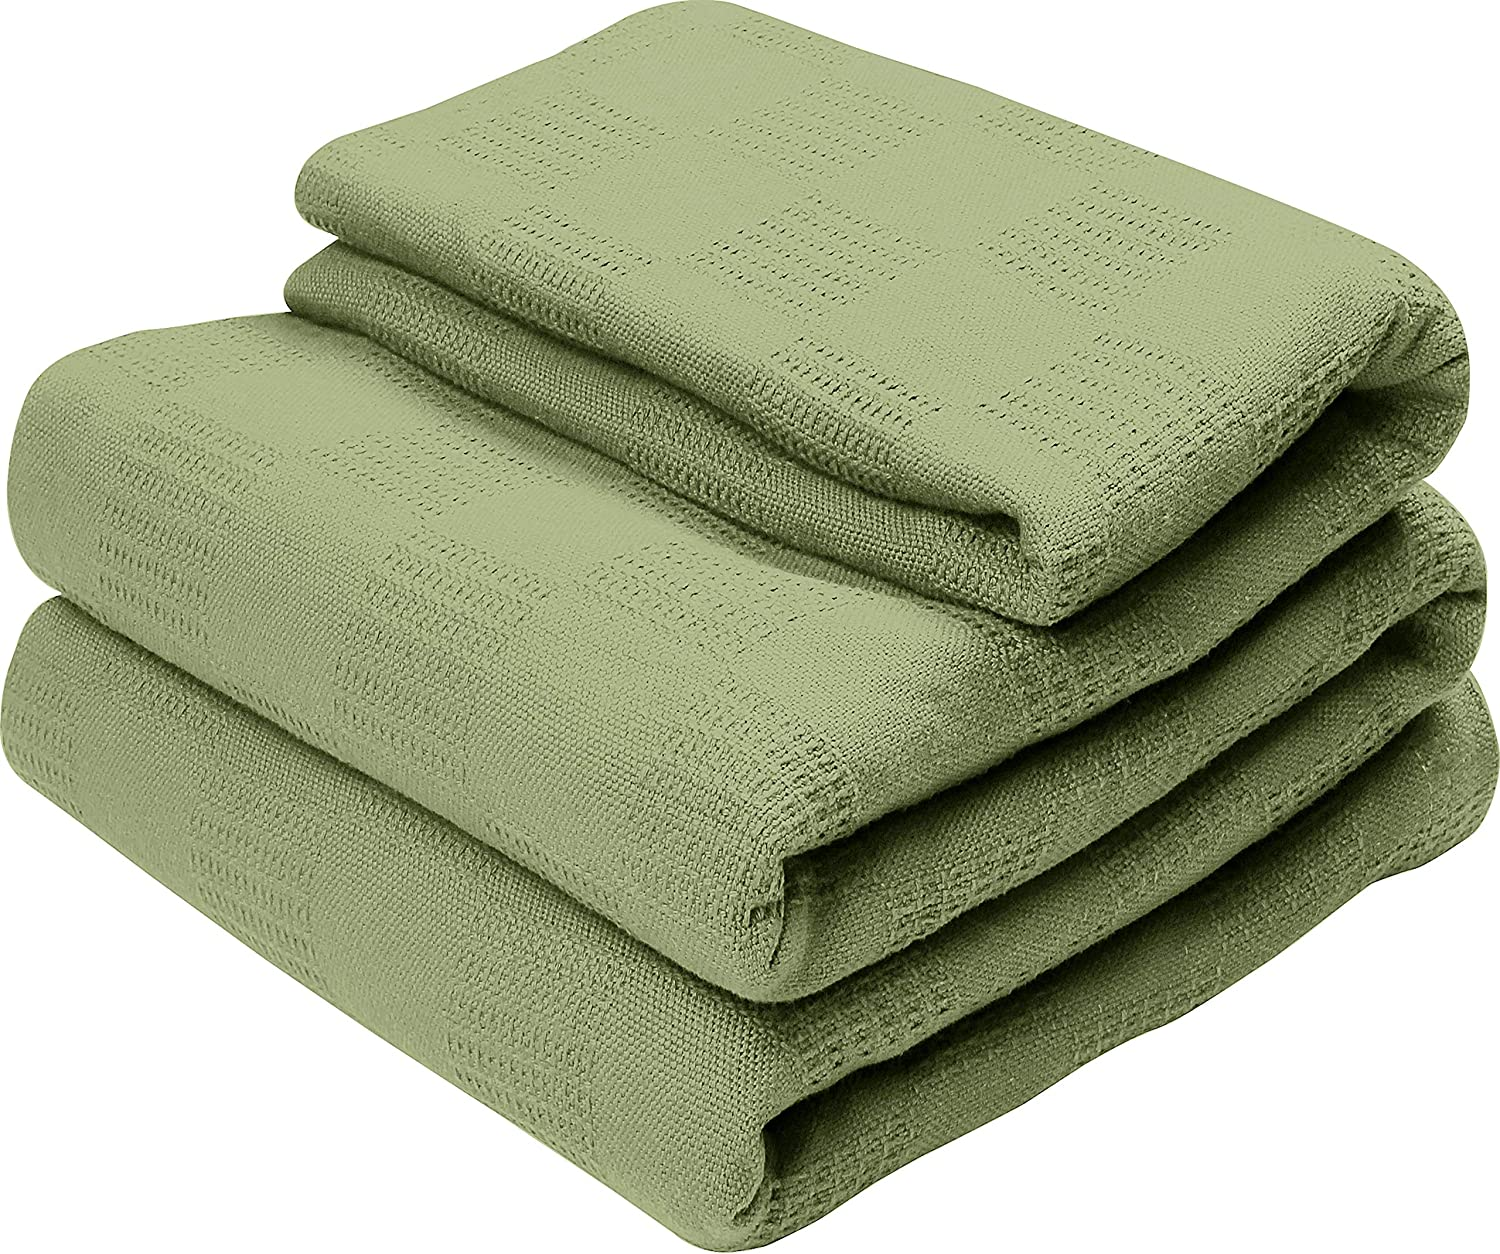 Utopia Bedding Premium Summer Cotton Blanket King Sage Green - Soft Breathable Thermal Blanket - Ideal for Layering Any Bed